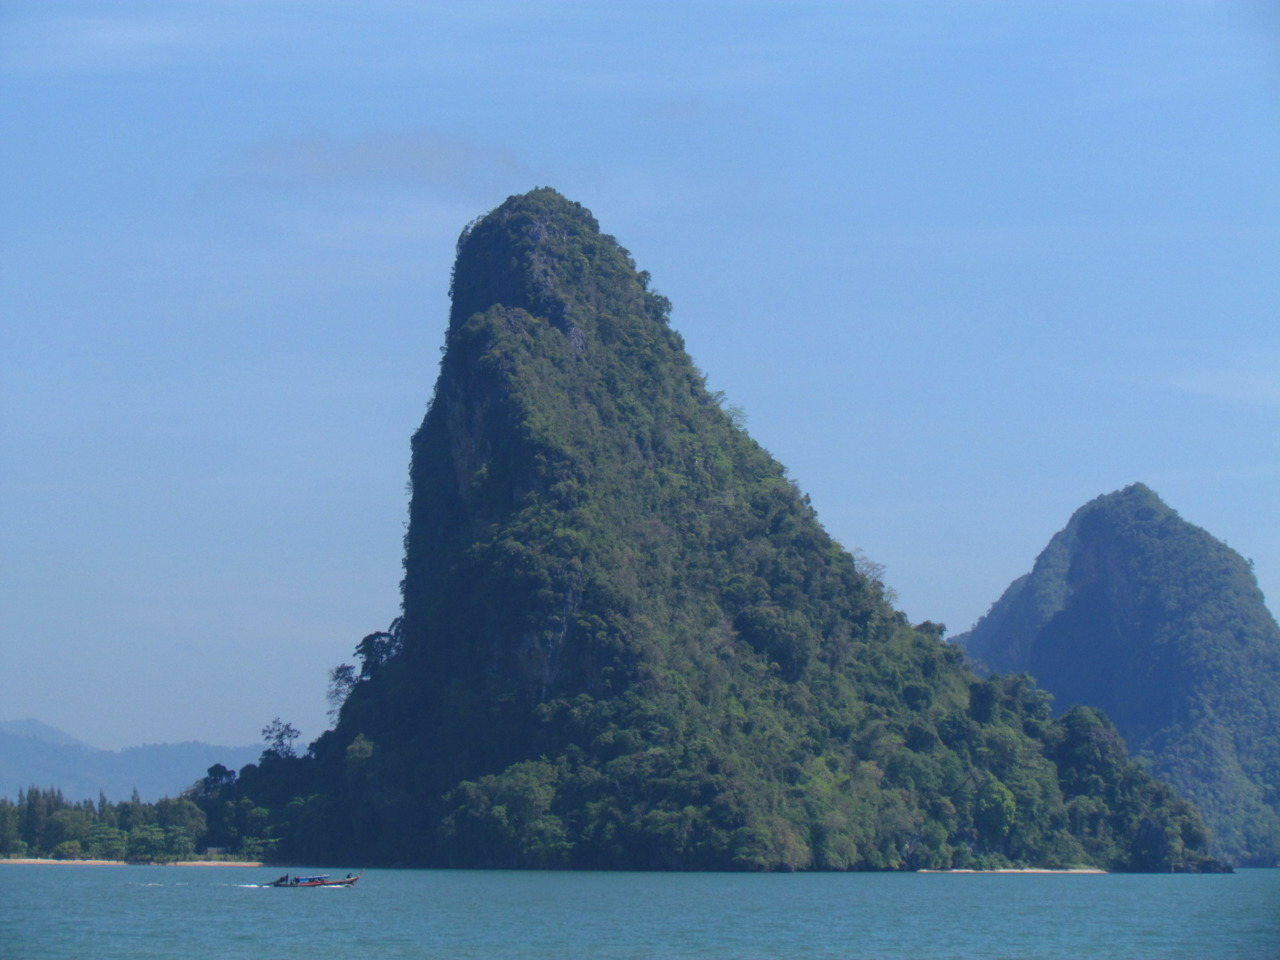 April 2011. An island of the Phang Nga island chain. Ao Phang Nga National Park, Phang Nga, Thailand.